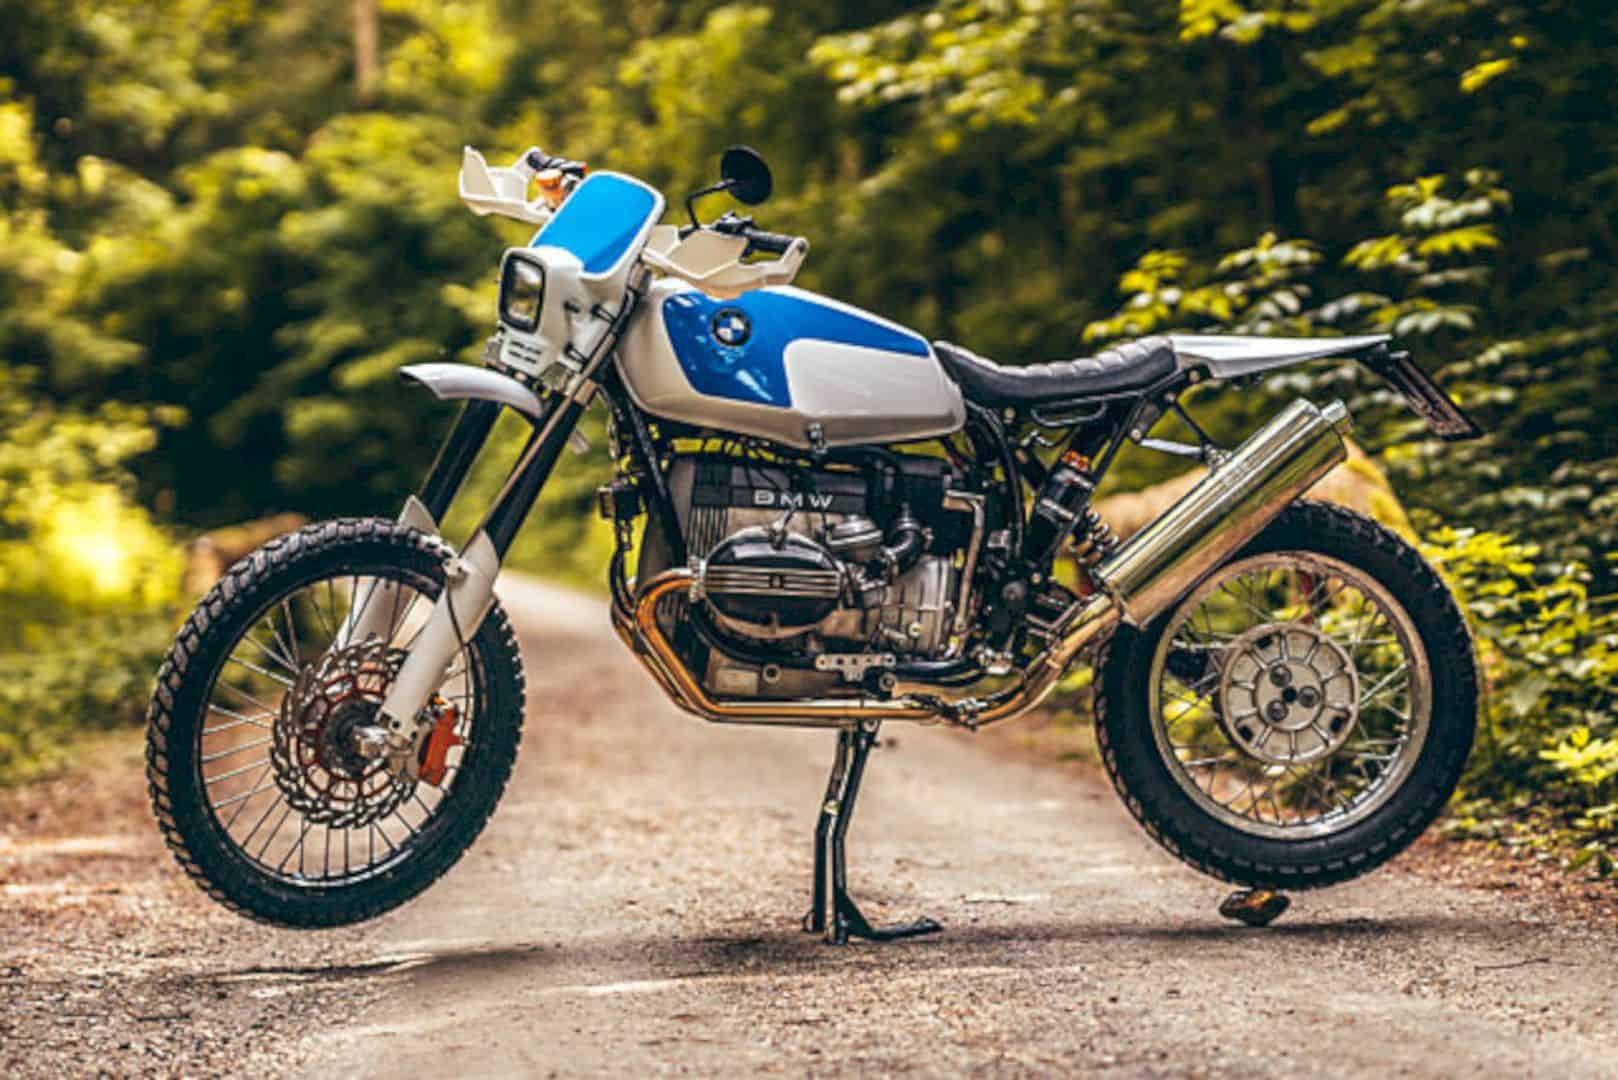 Bmw R80gs Enduro By Nct Motorcycles 9